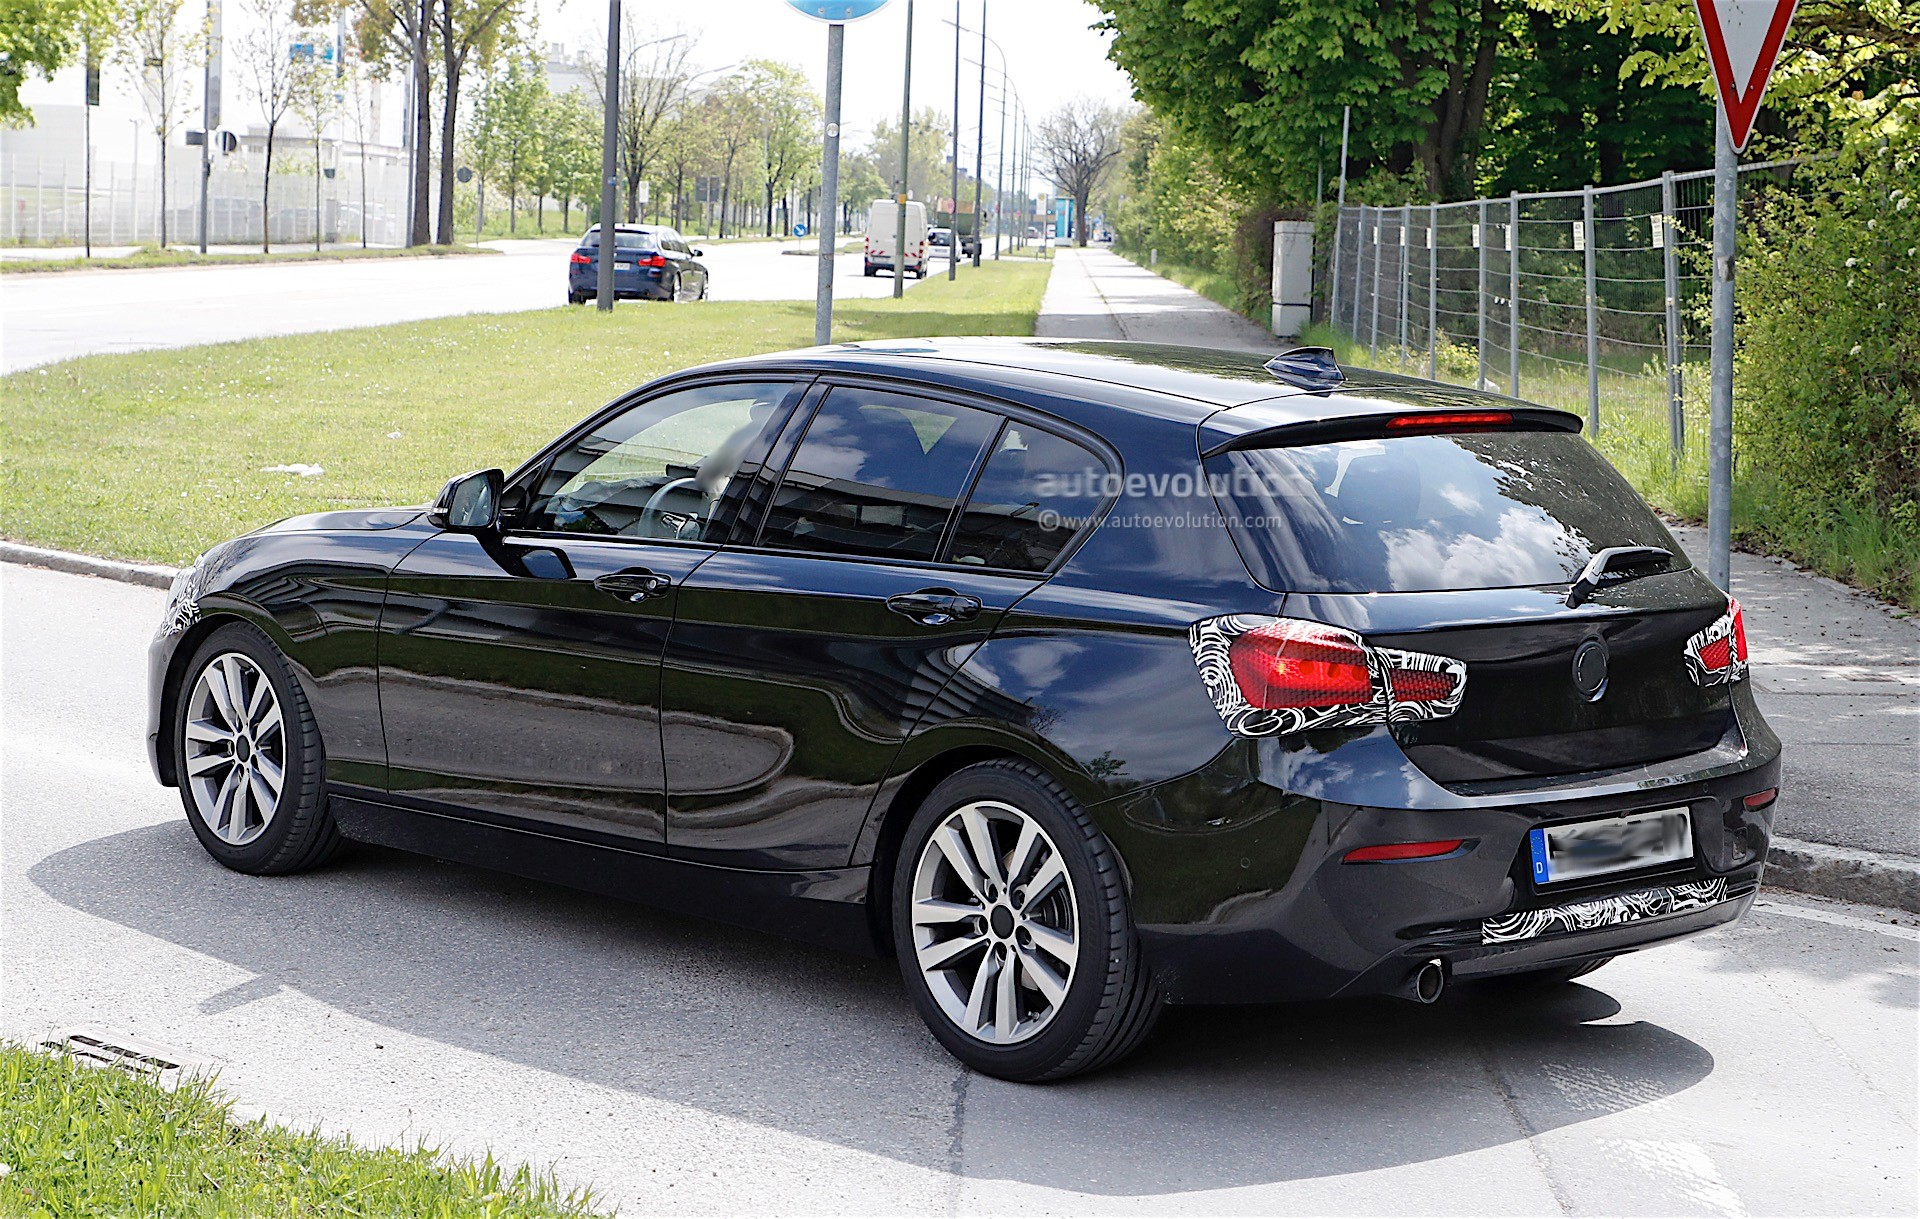 2018 bmw 1 series facelift spied again expect to see it revealed soon autoevolution. Black Bedroom Furniture Sets. Home Design Ideas